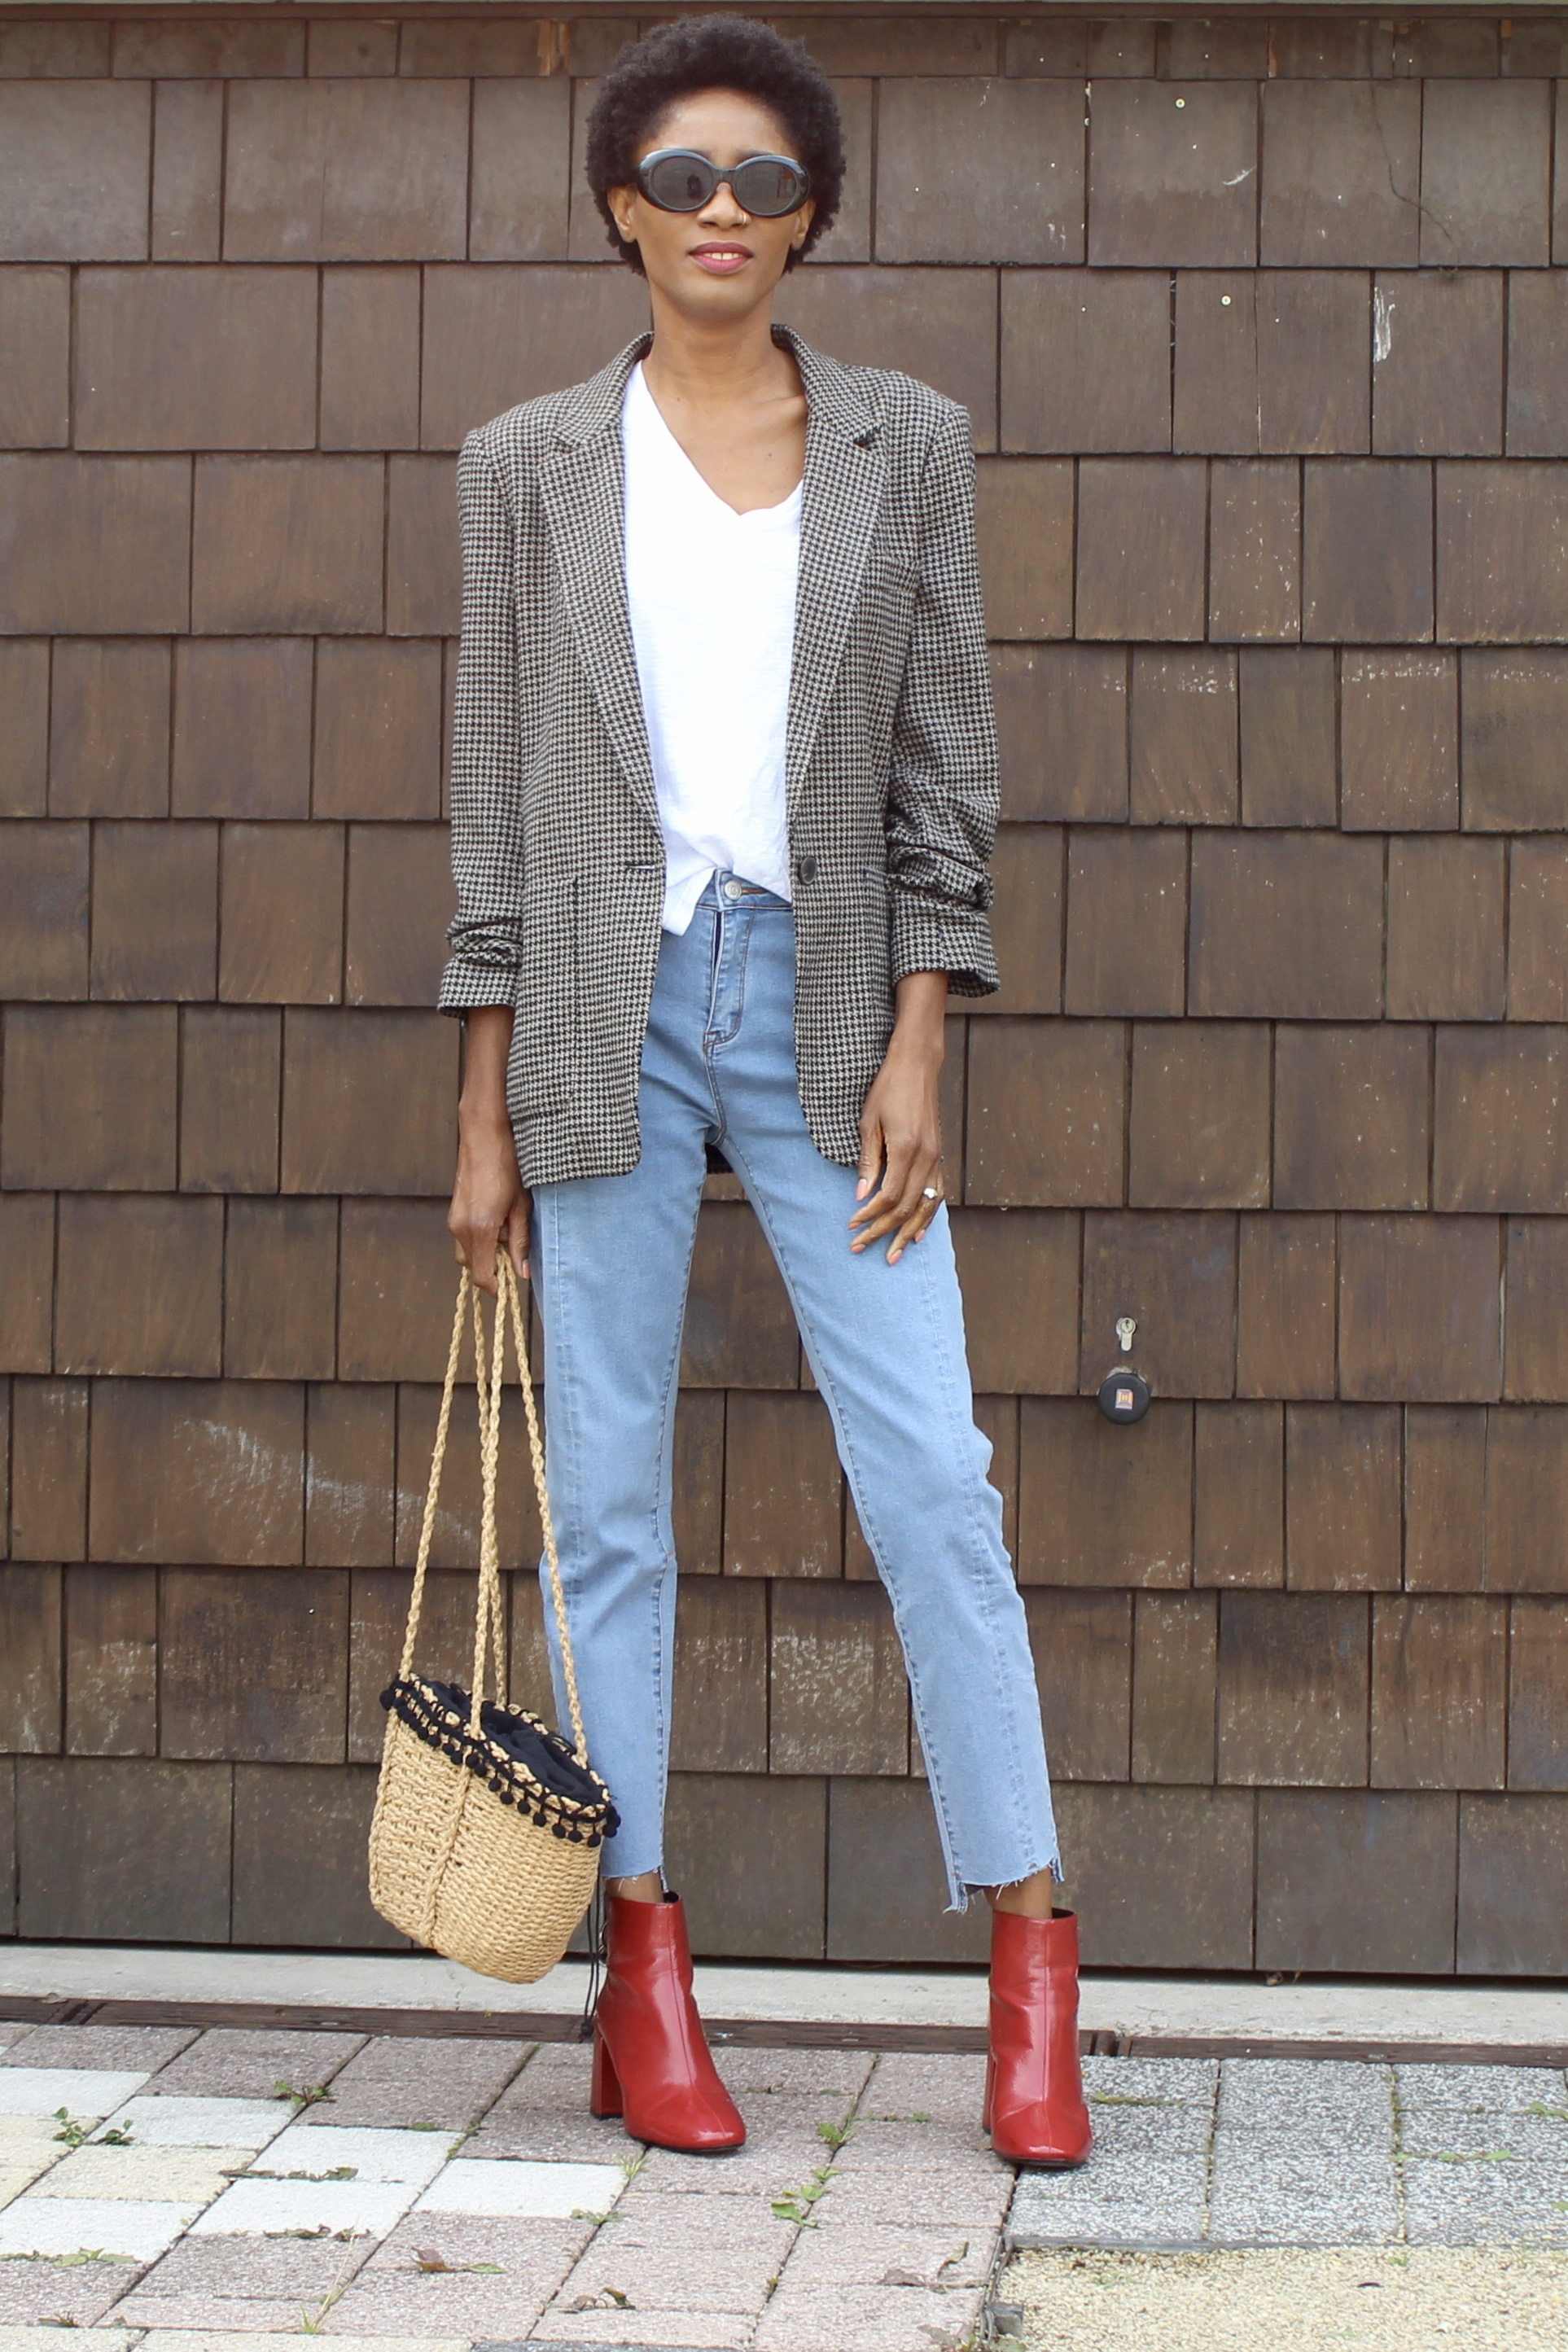 Jeans blazer red ankle boots outfit for the start of fall